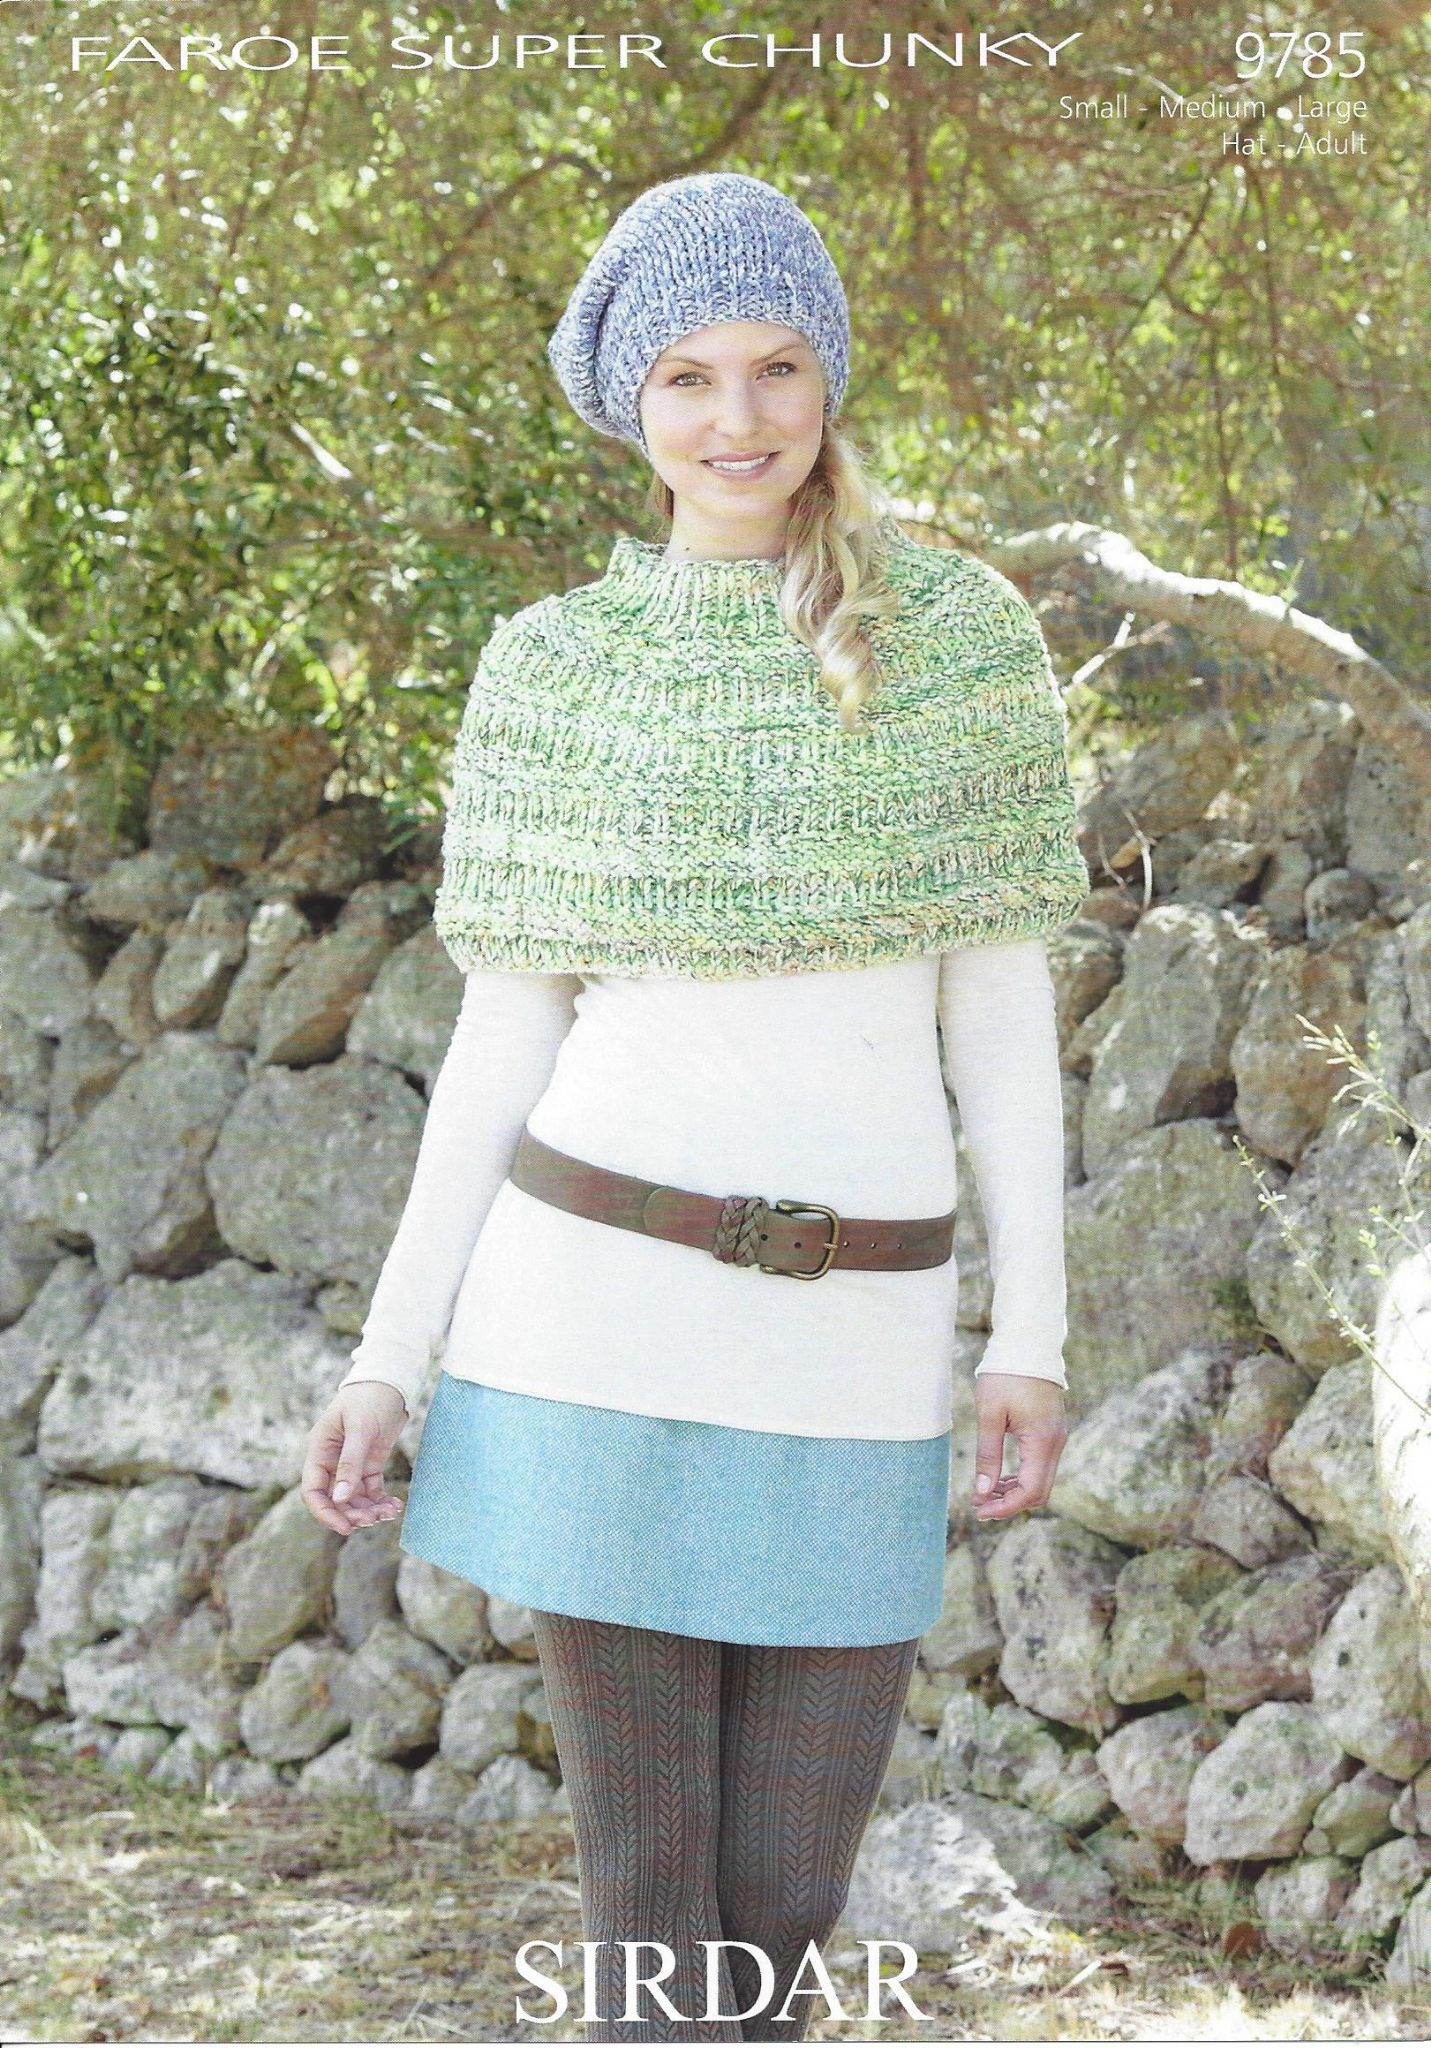 Baby Shawls Knitting Patterns Free : Sirdar Faroe Super Chunky - 9785 Poncho & Hat Knitting Pattern